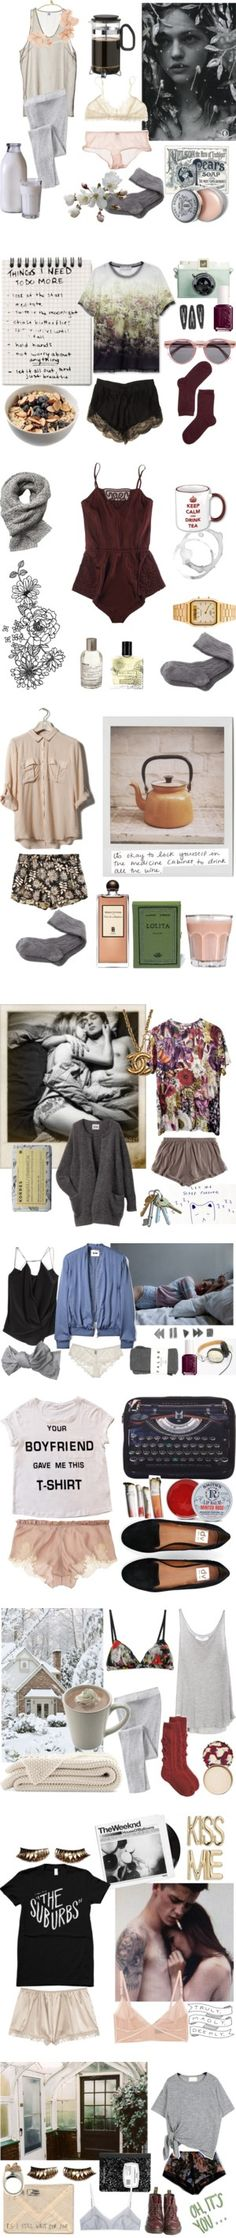 """""""Mornings"""" by kelly-m-o on Polyvore"""